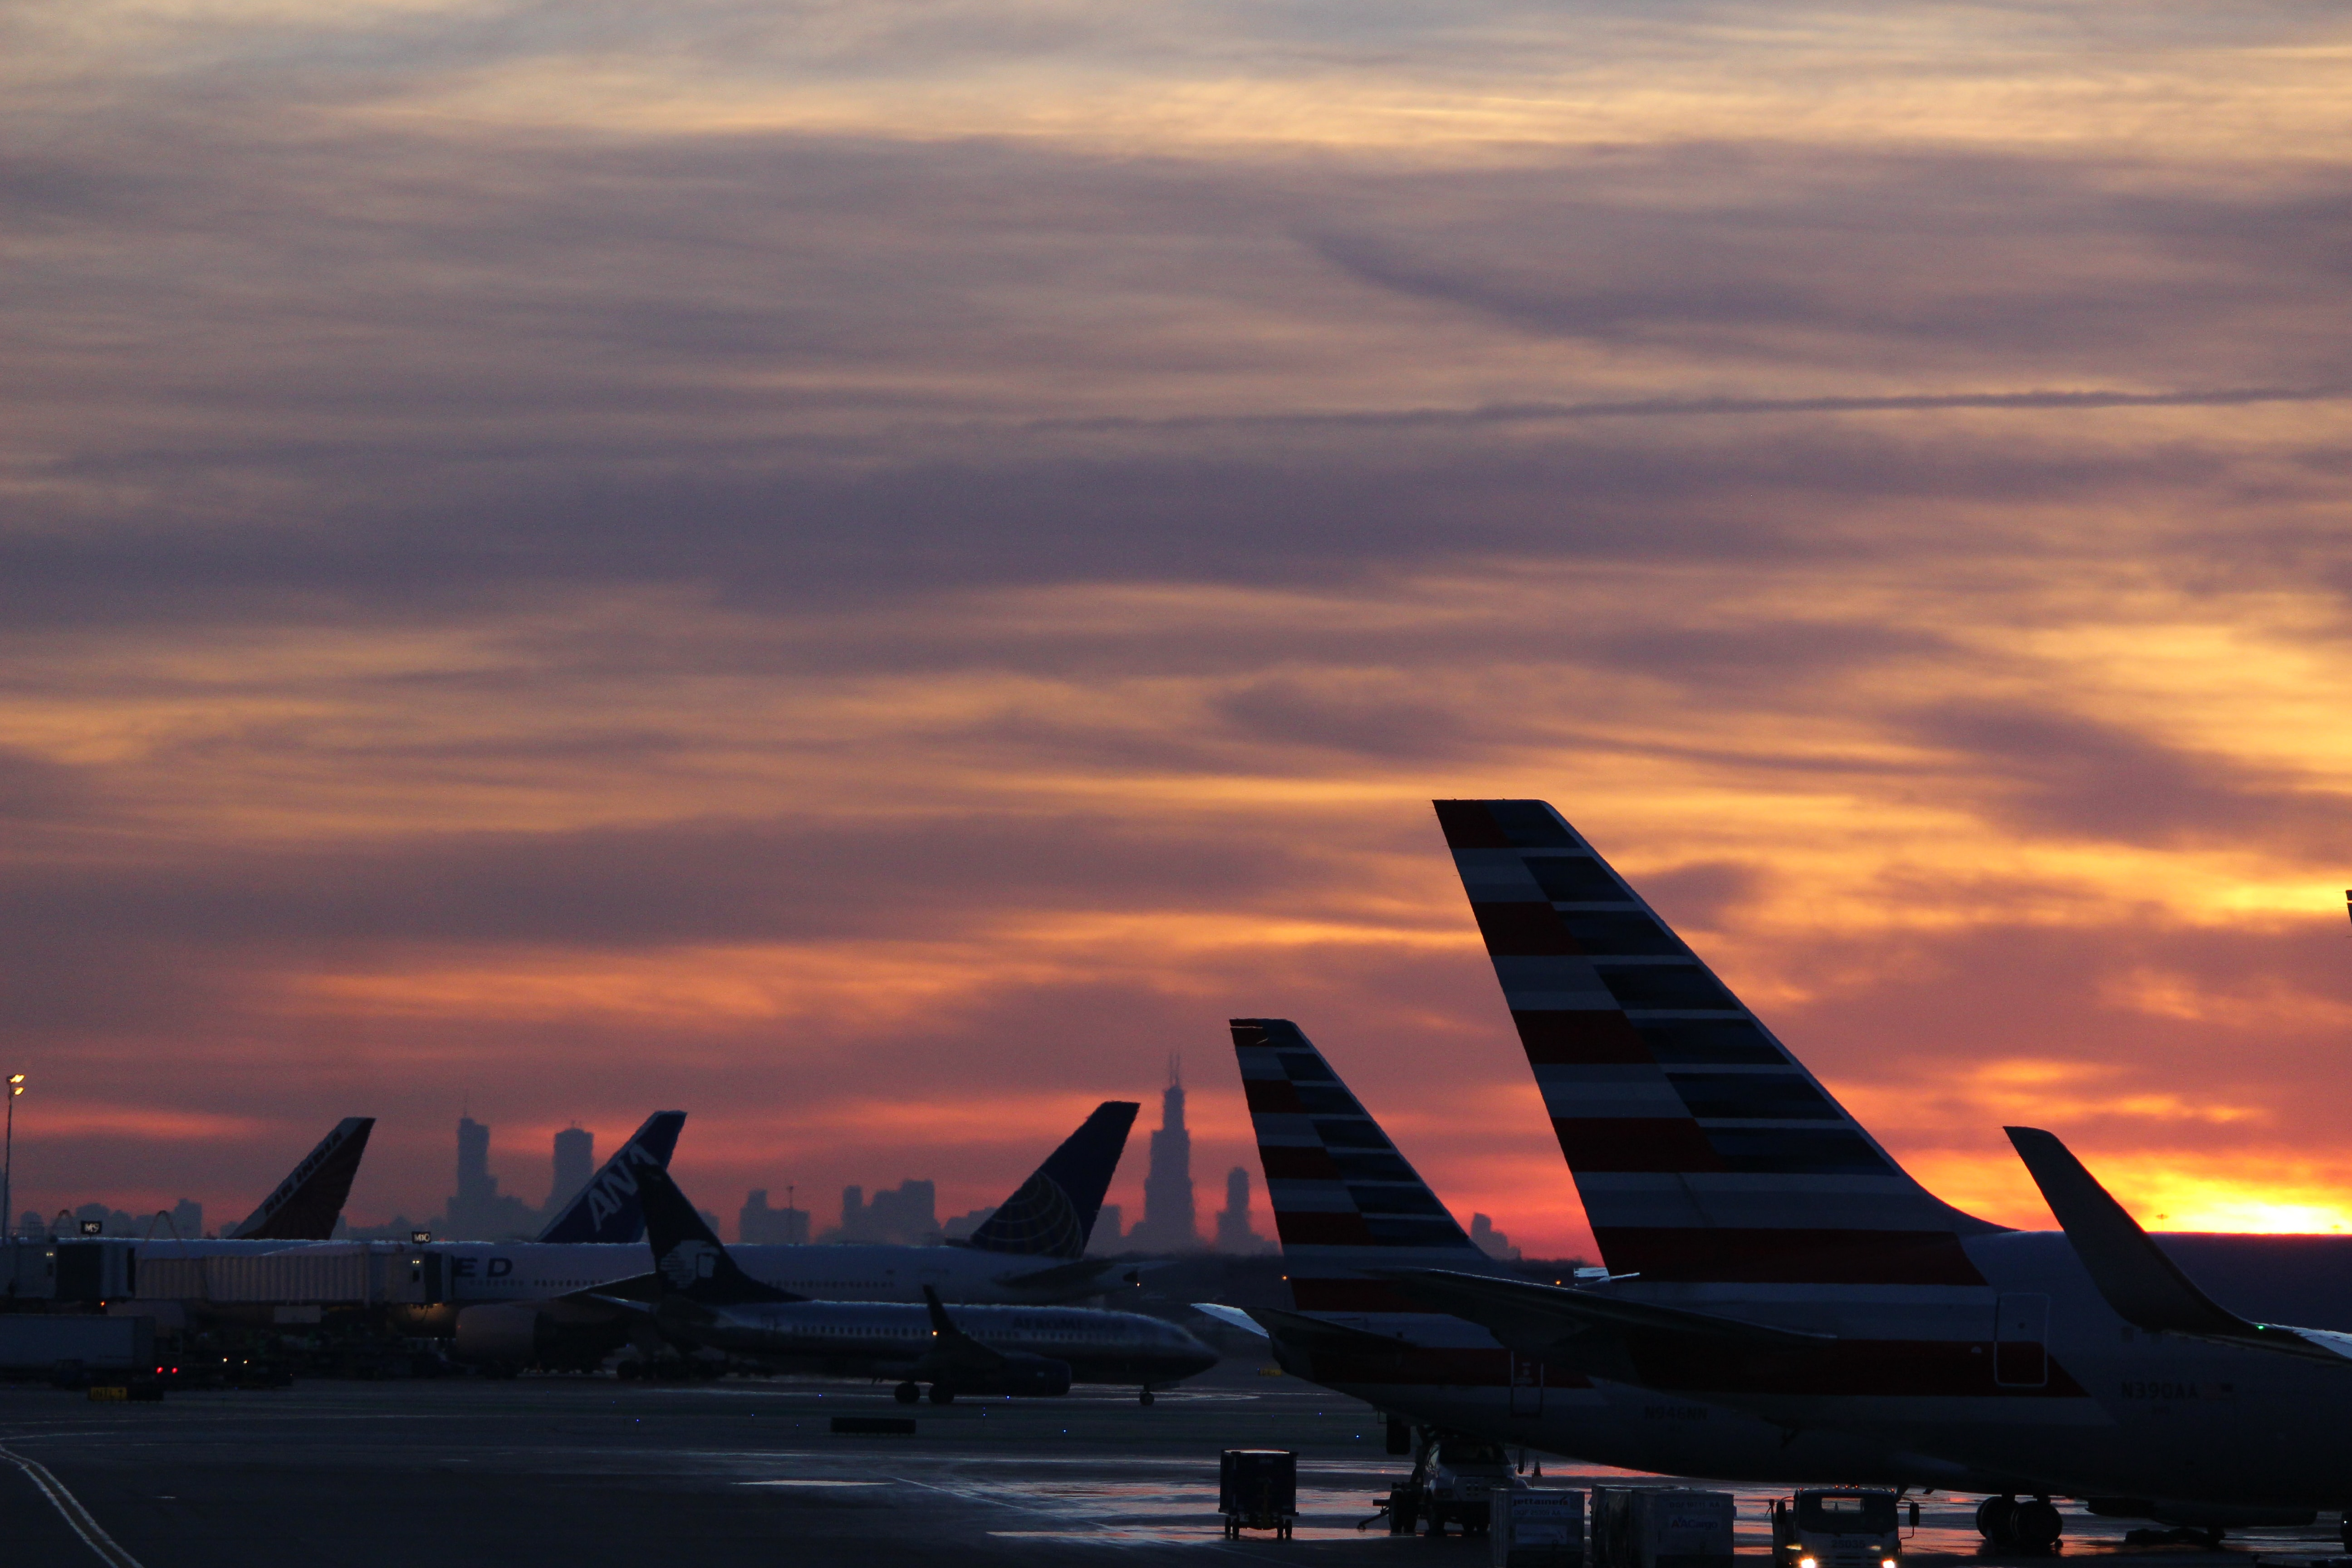 airplane on airport during sunset